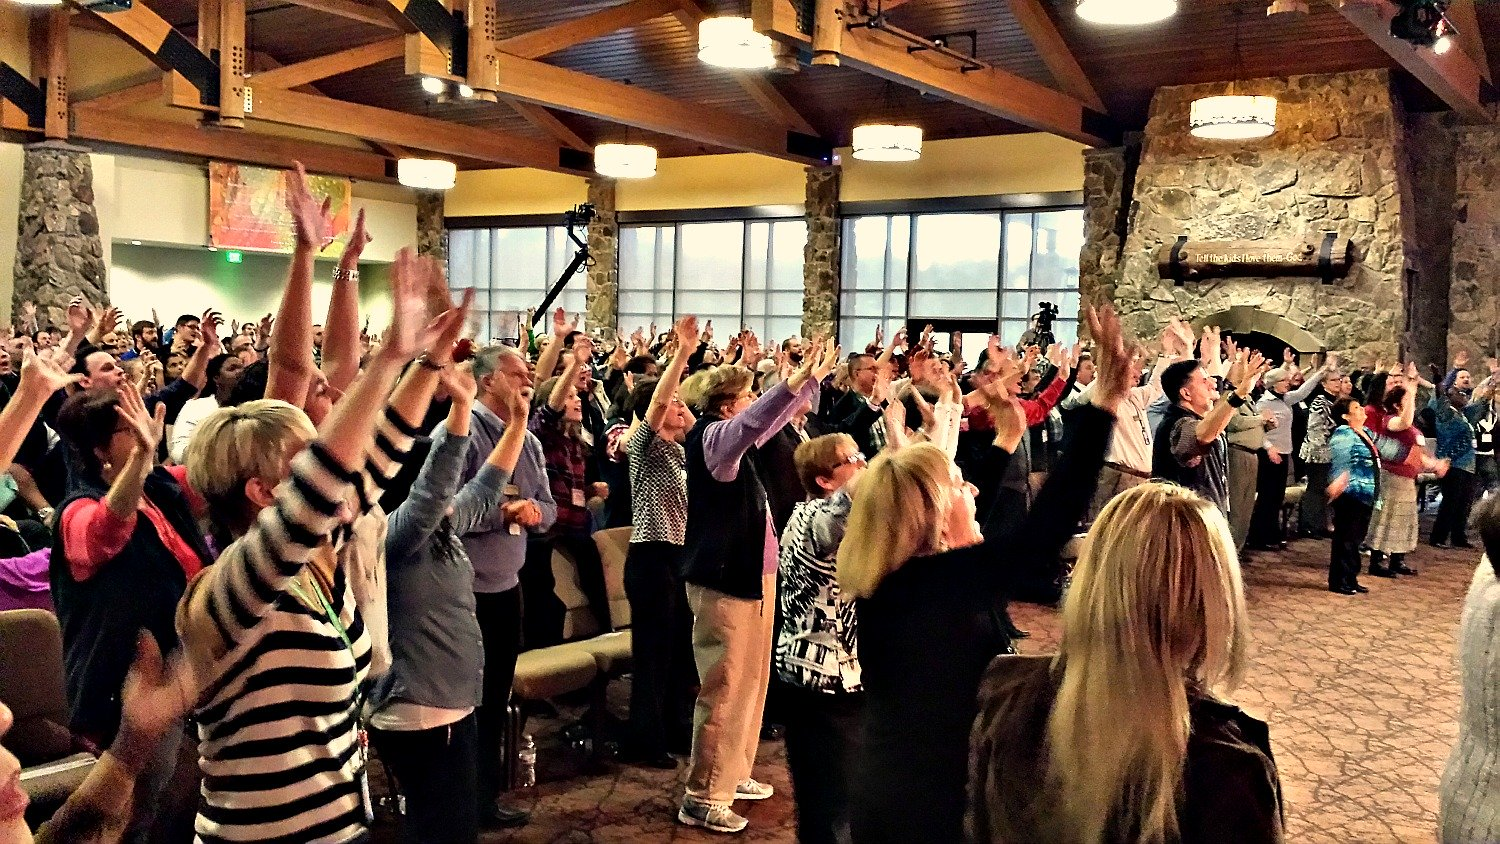 Believers in Jesus Praising the Lord for His healing & goodness